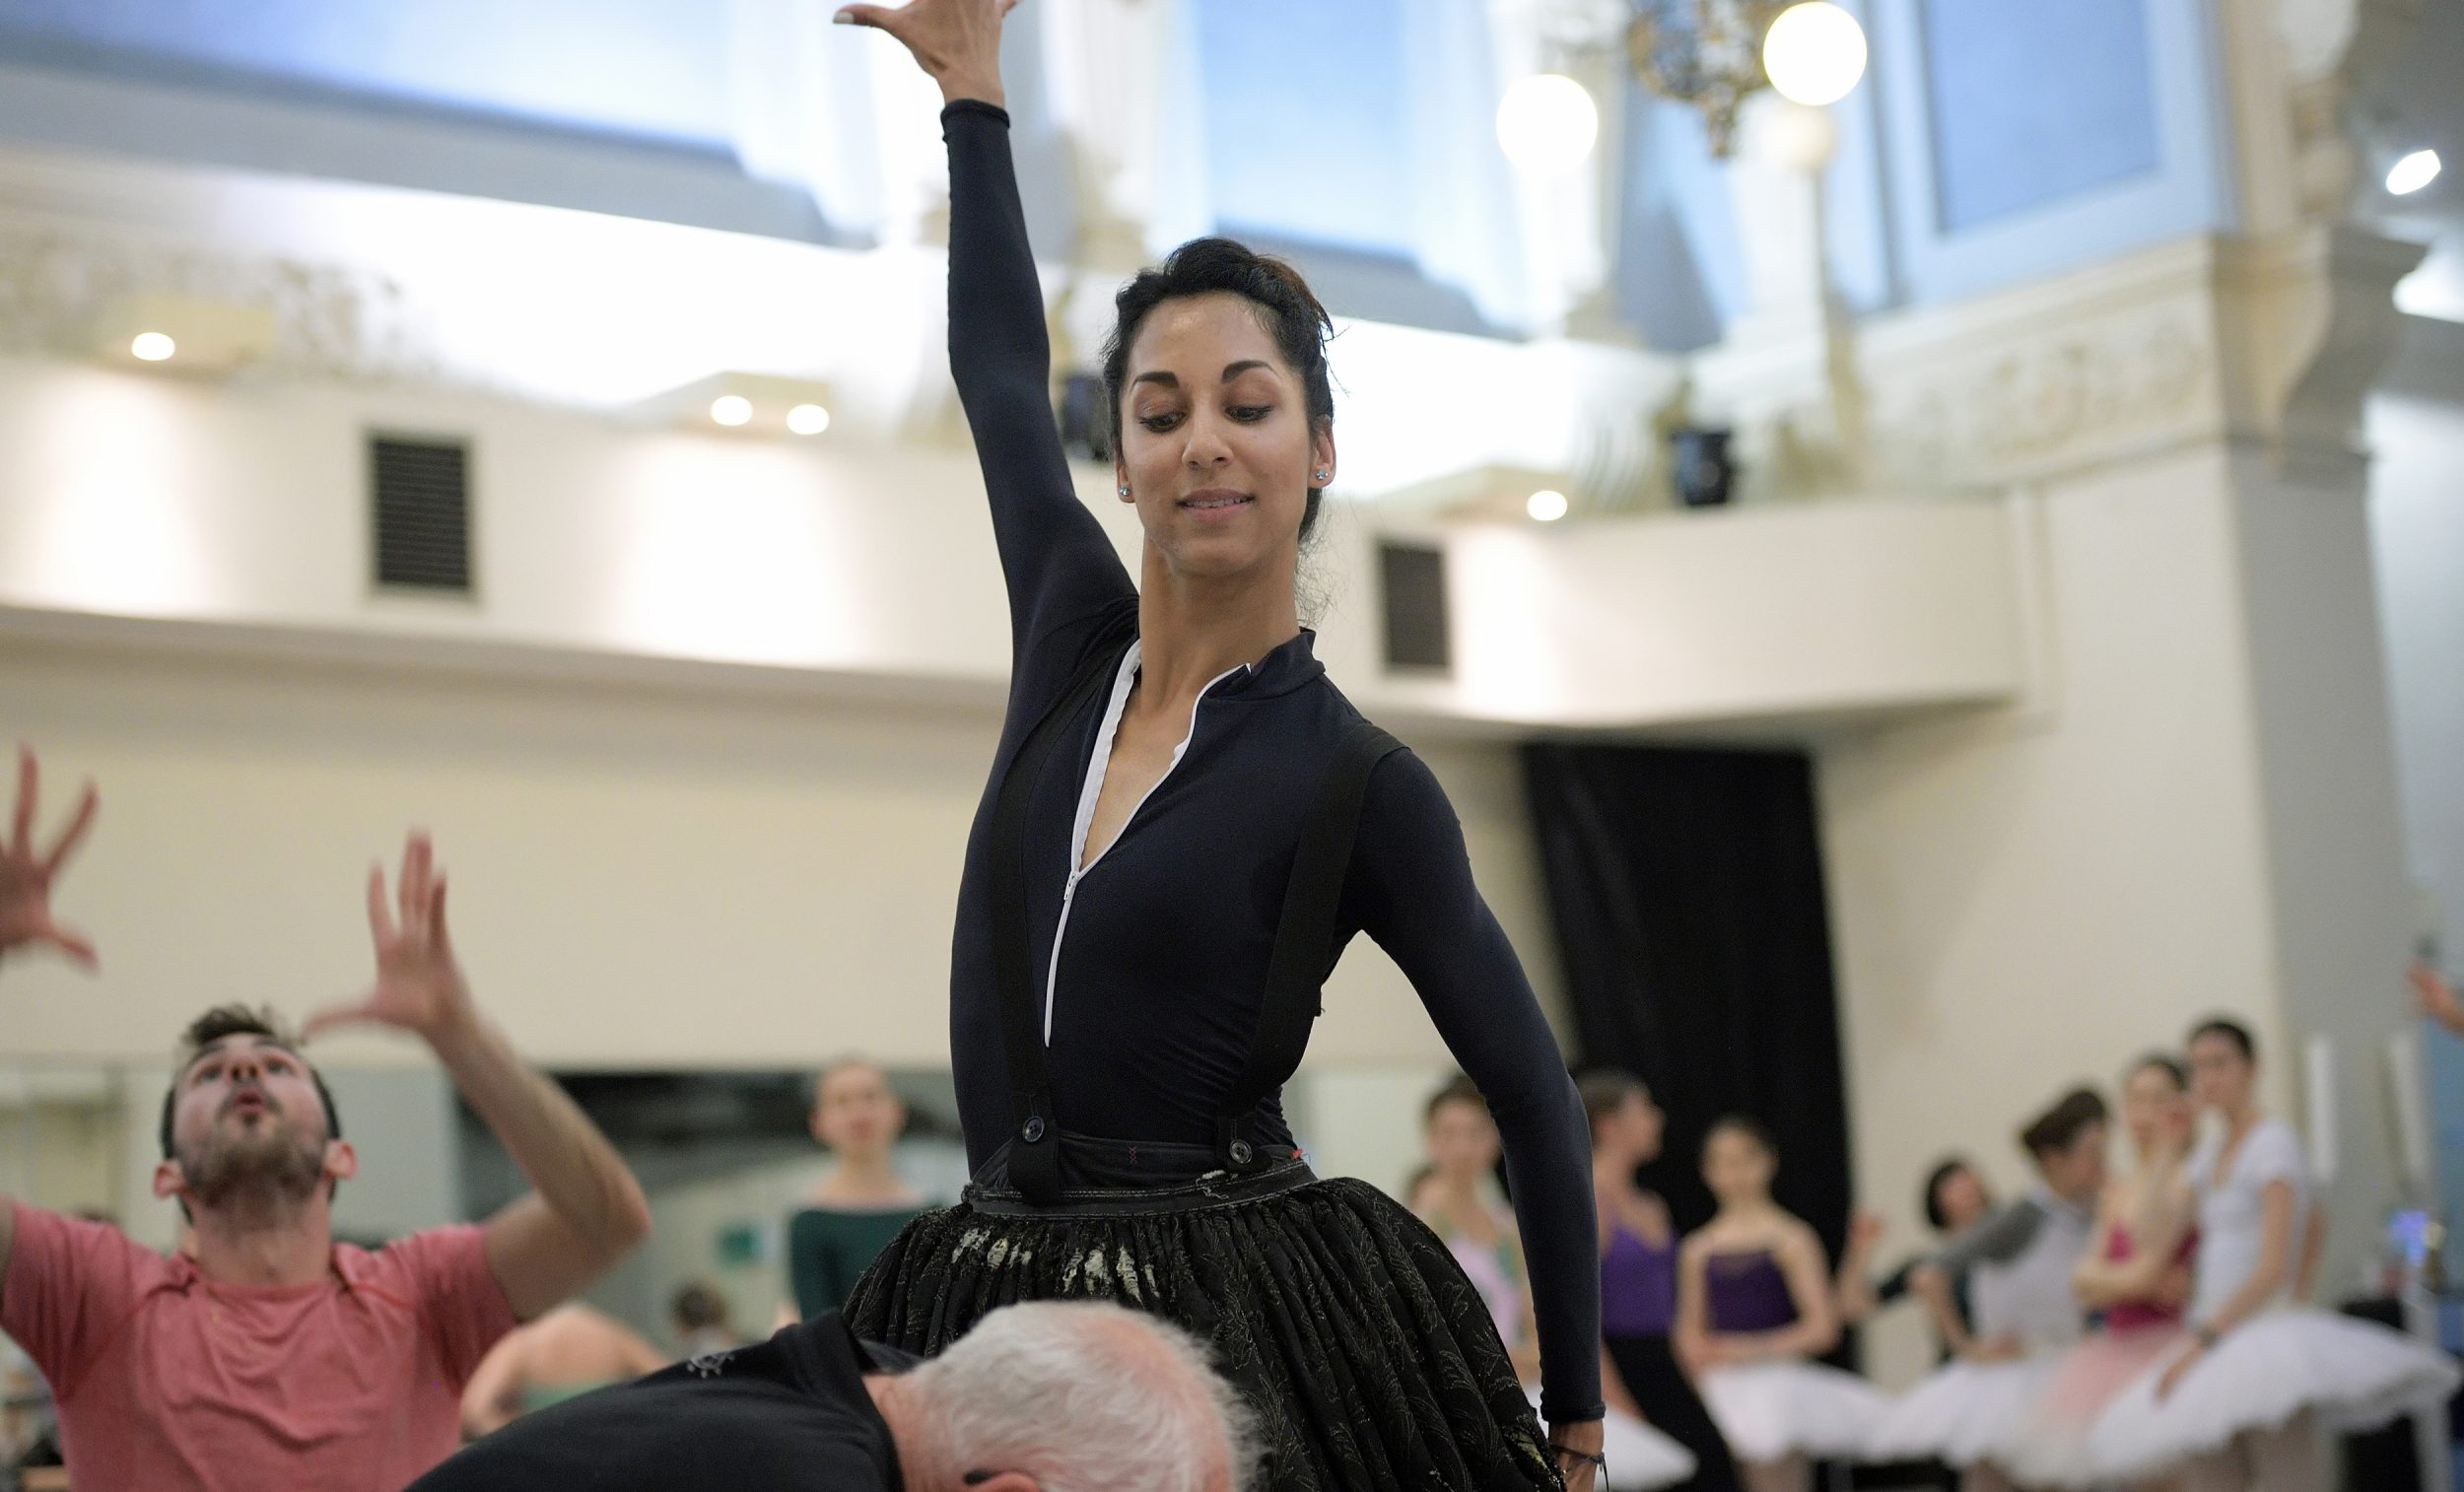 Sarah Kundi rehearsing The Sleeping Beauty © Laurent Liotardo (1)_WEB